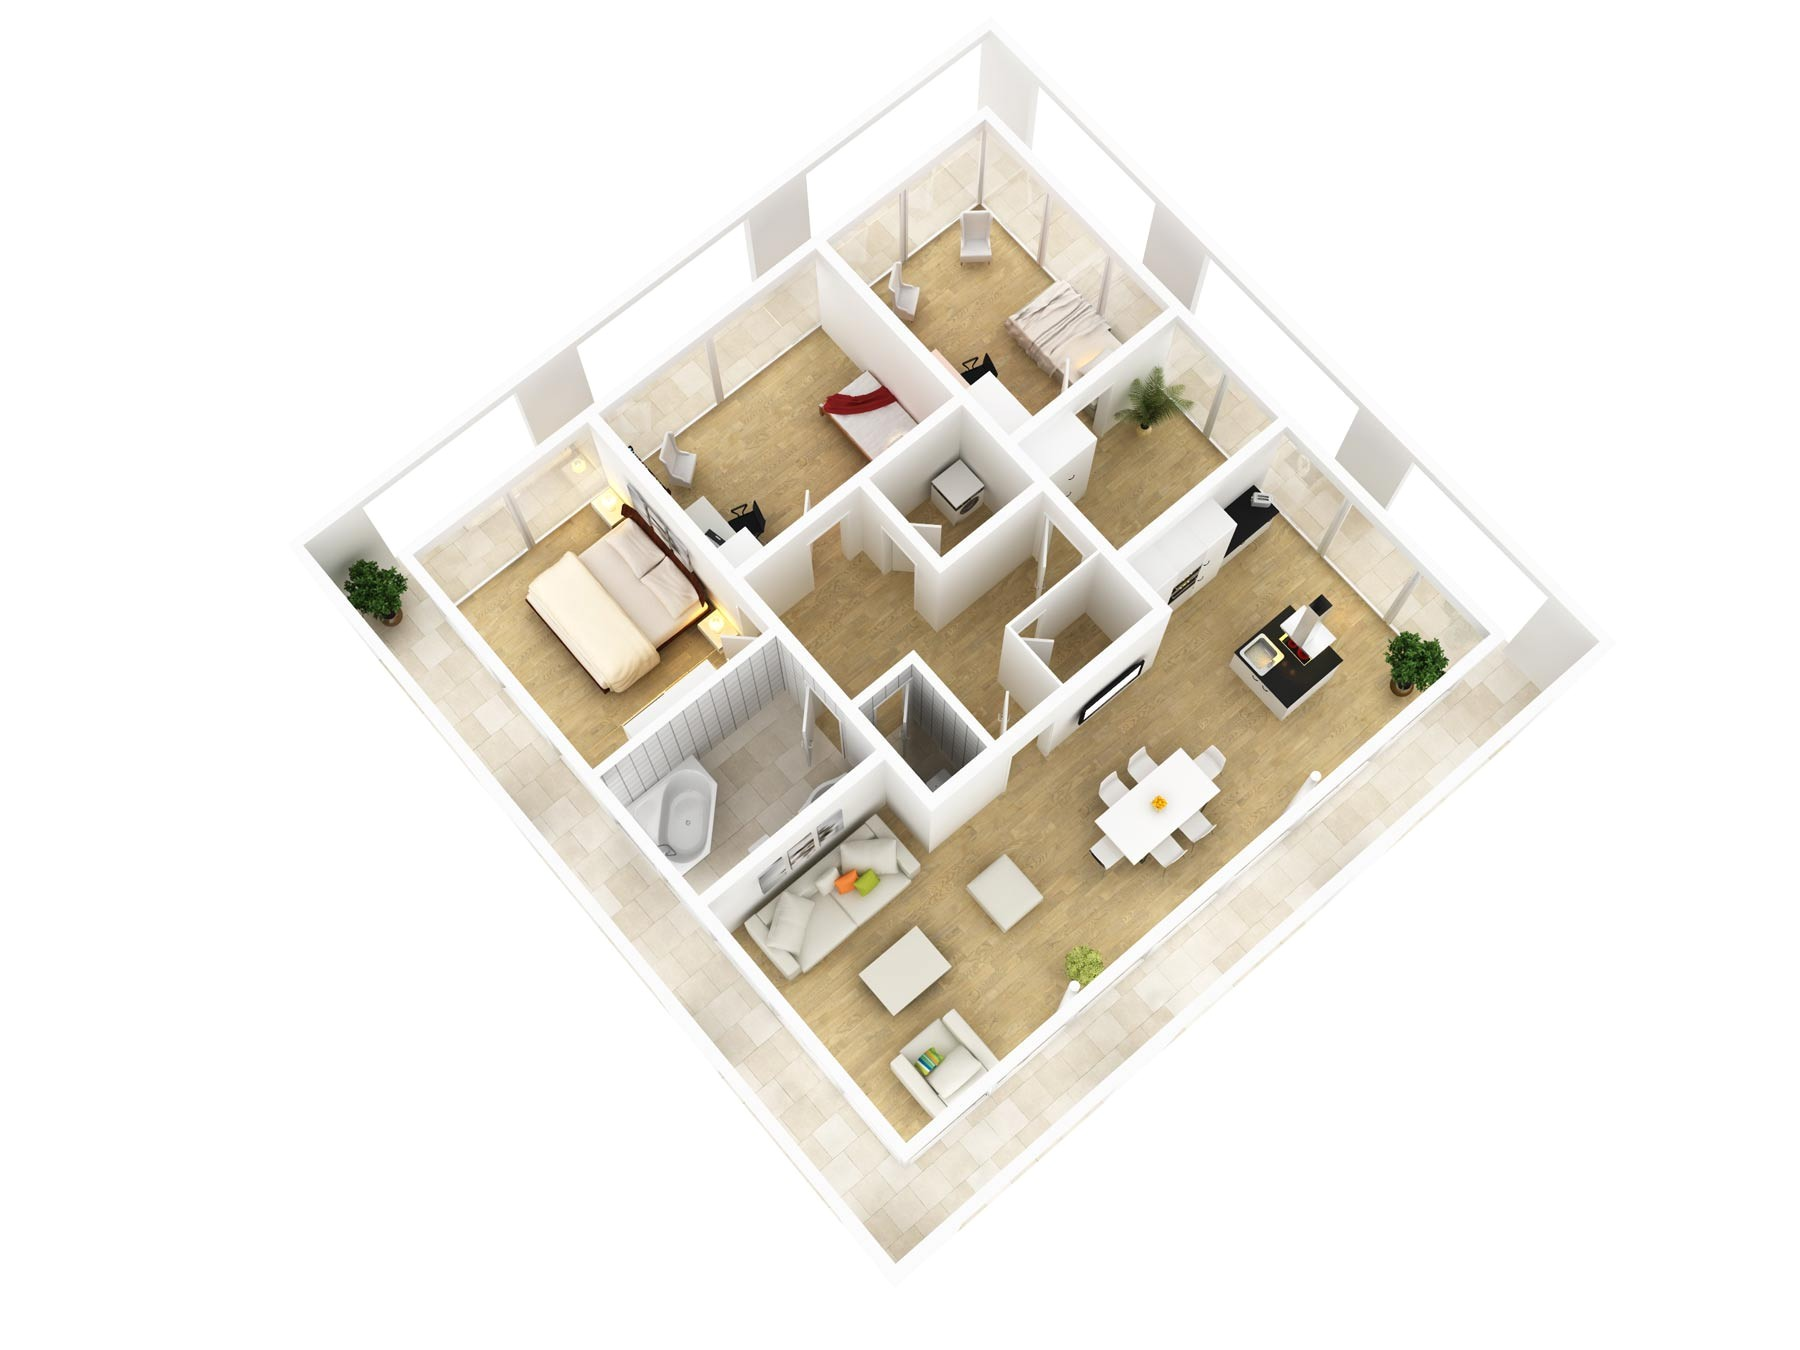 spacious 3 bedroom house plans